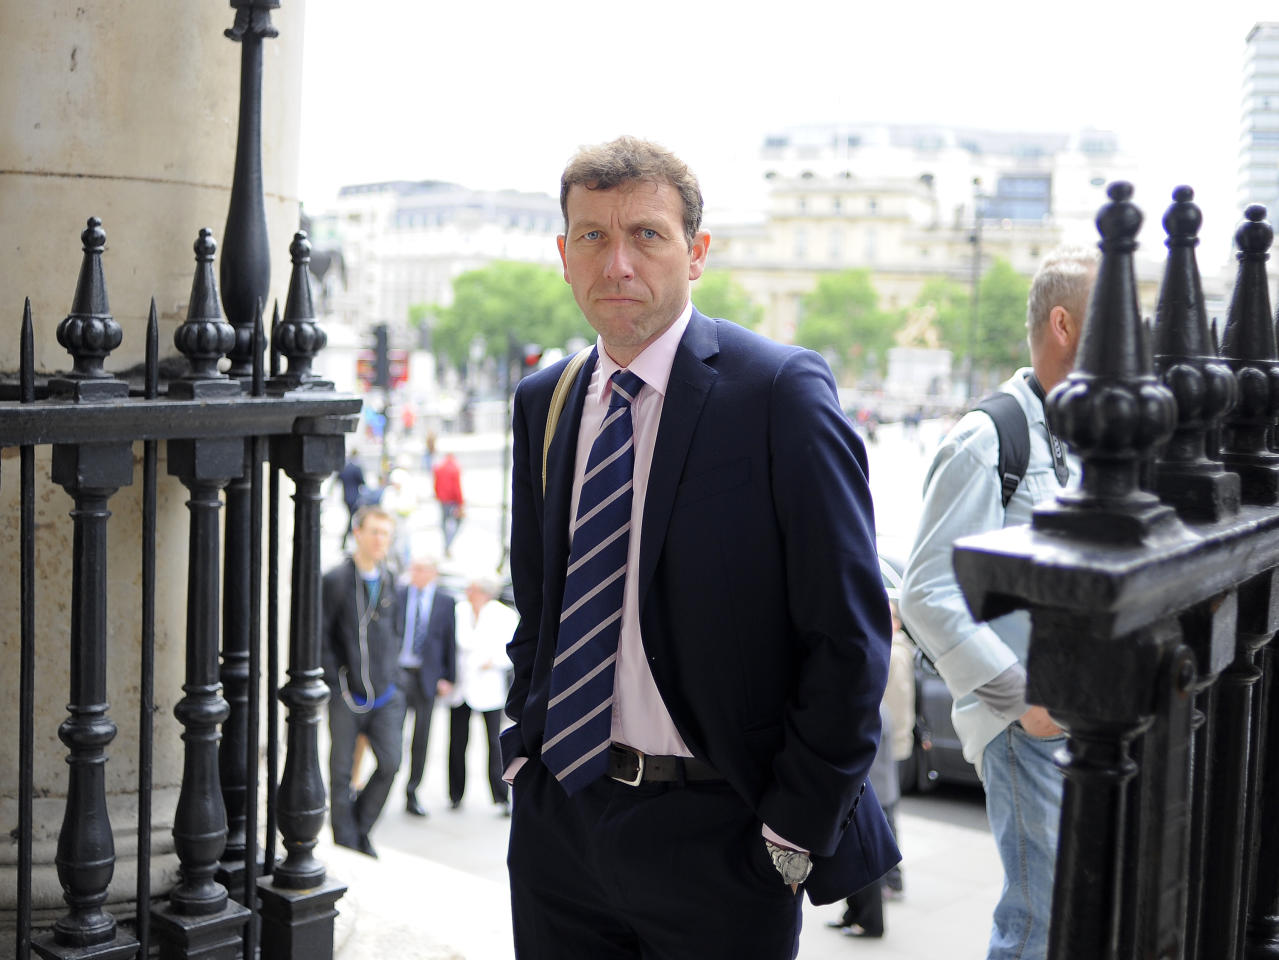 LONDON, ENGLAND - JUNE 24: Michael Atherton attends the Memorial Service for former Cricketer Tony Greig on June 24, 2013 in London, England. (Photo by Charlie Crowhurst/Getty Images)